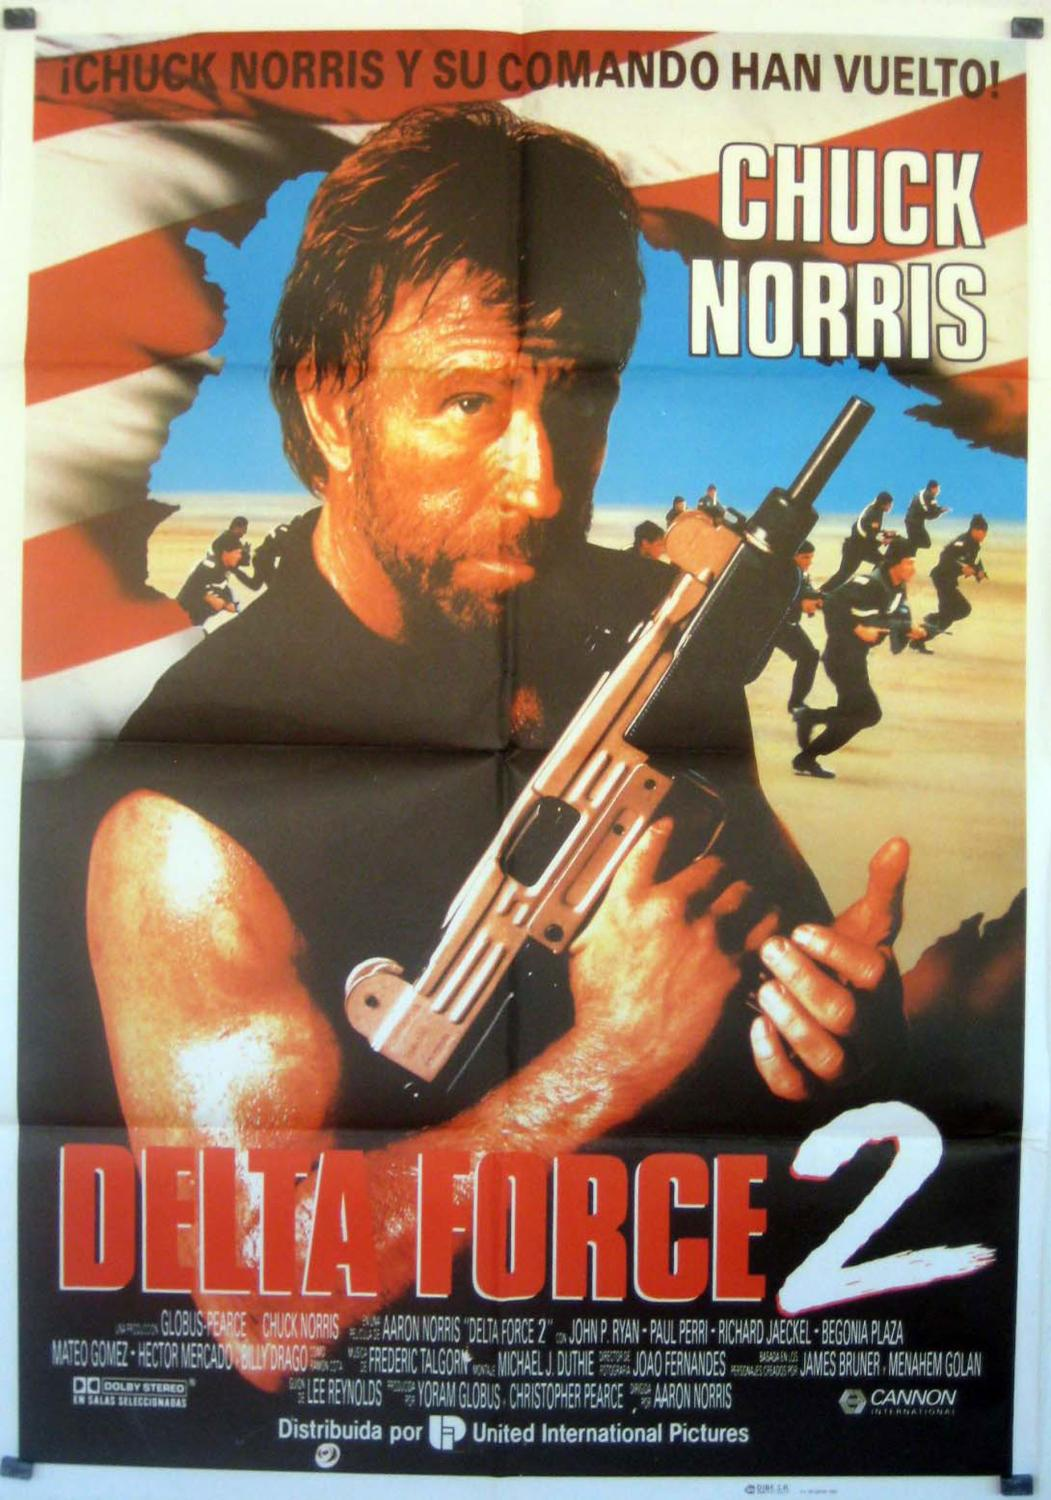 Delta Force 2: The Colombian Connection MOVIE POSTER/DELTA FORCE 2/POSTER